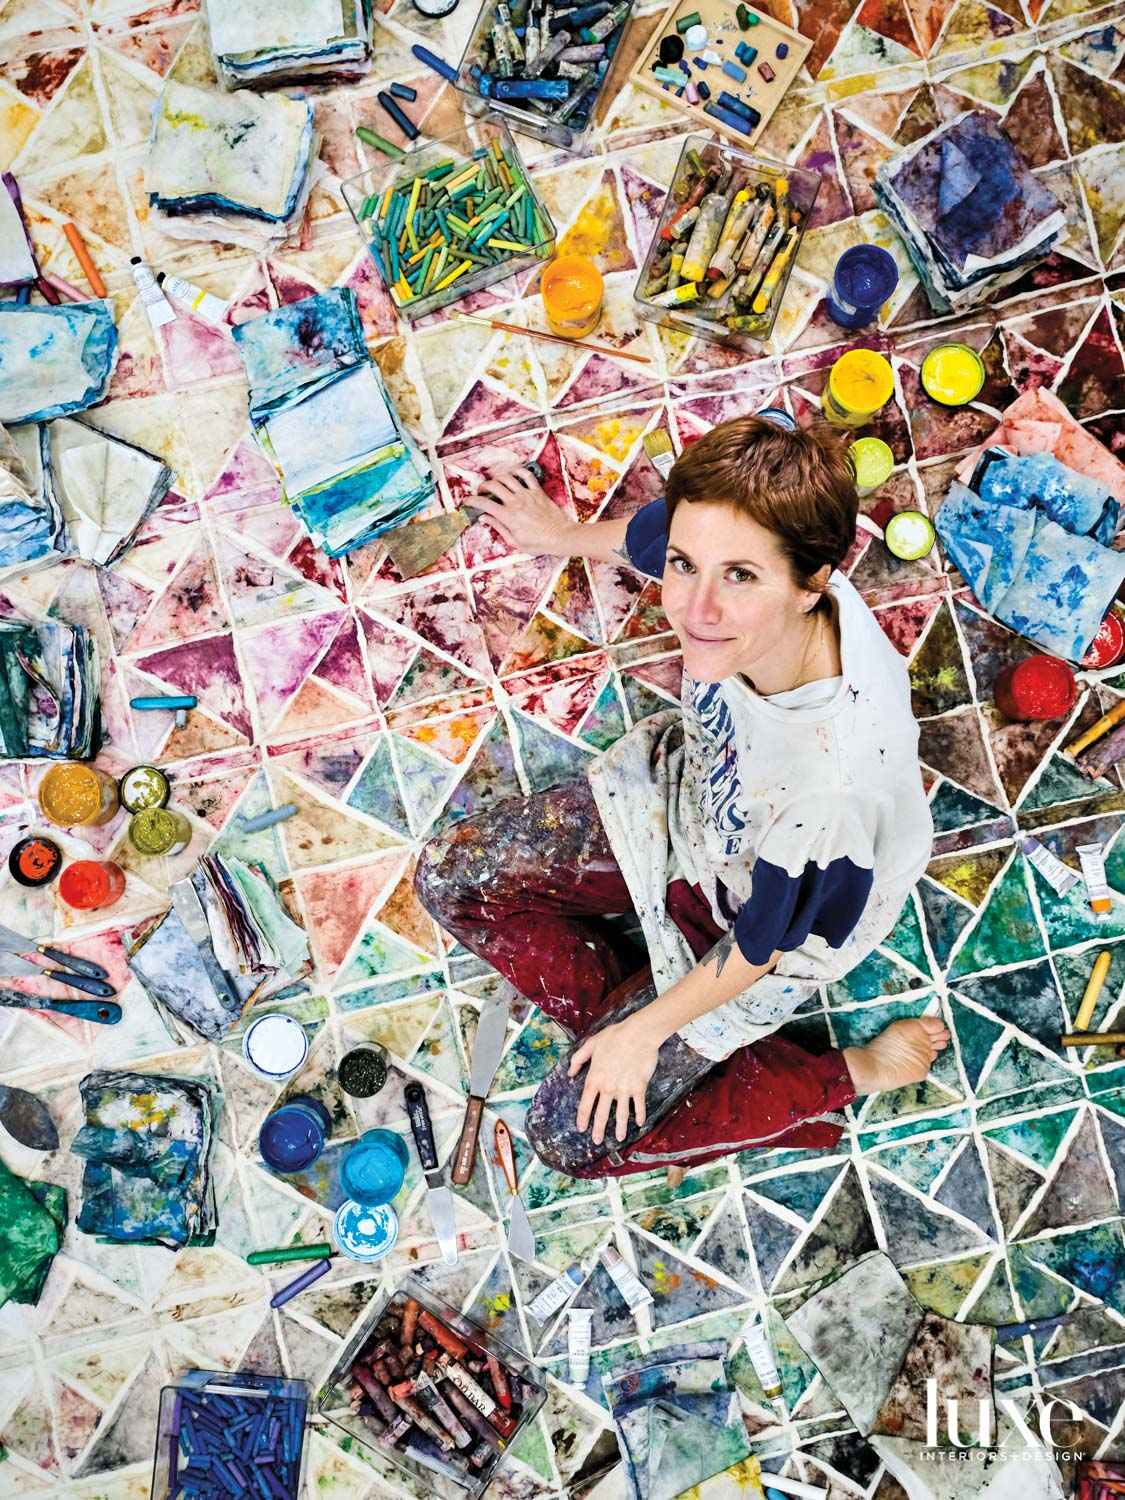 Woman sitting on a quilt with paints and tools surrounding her